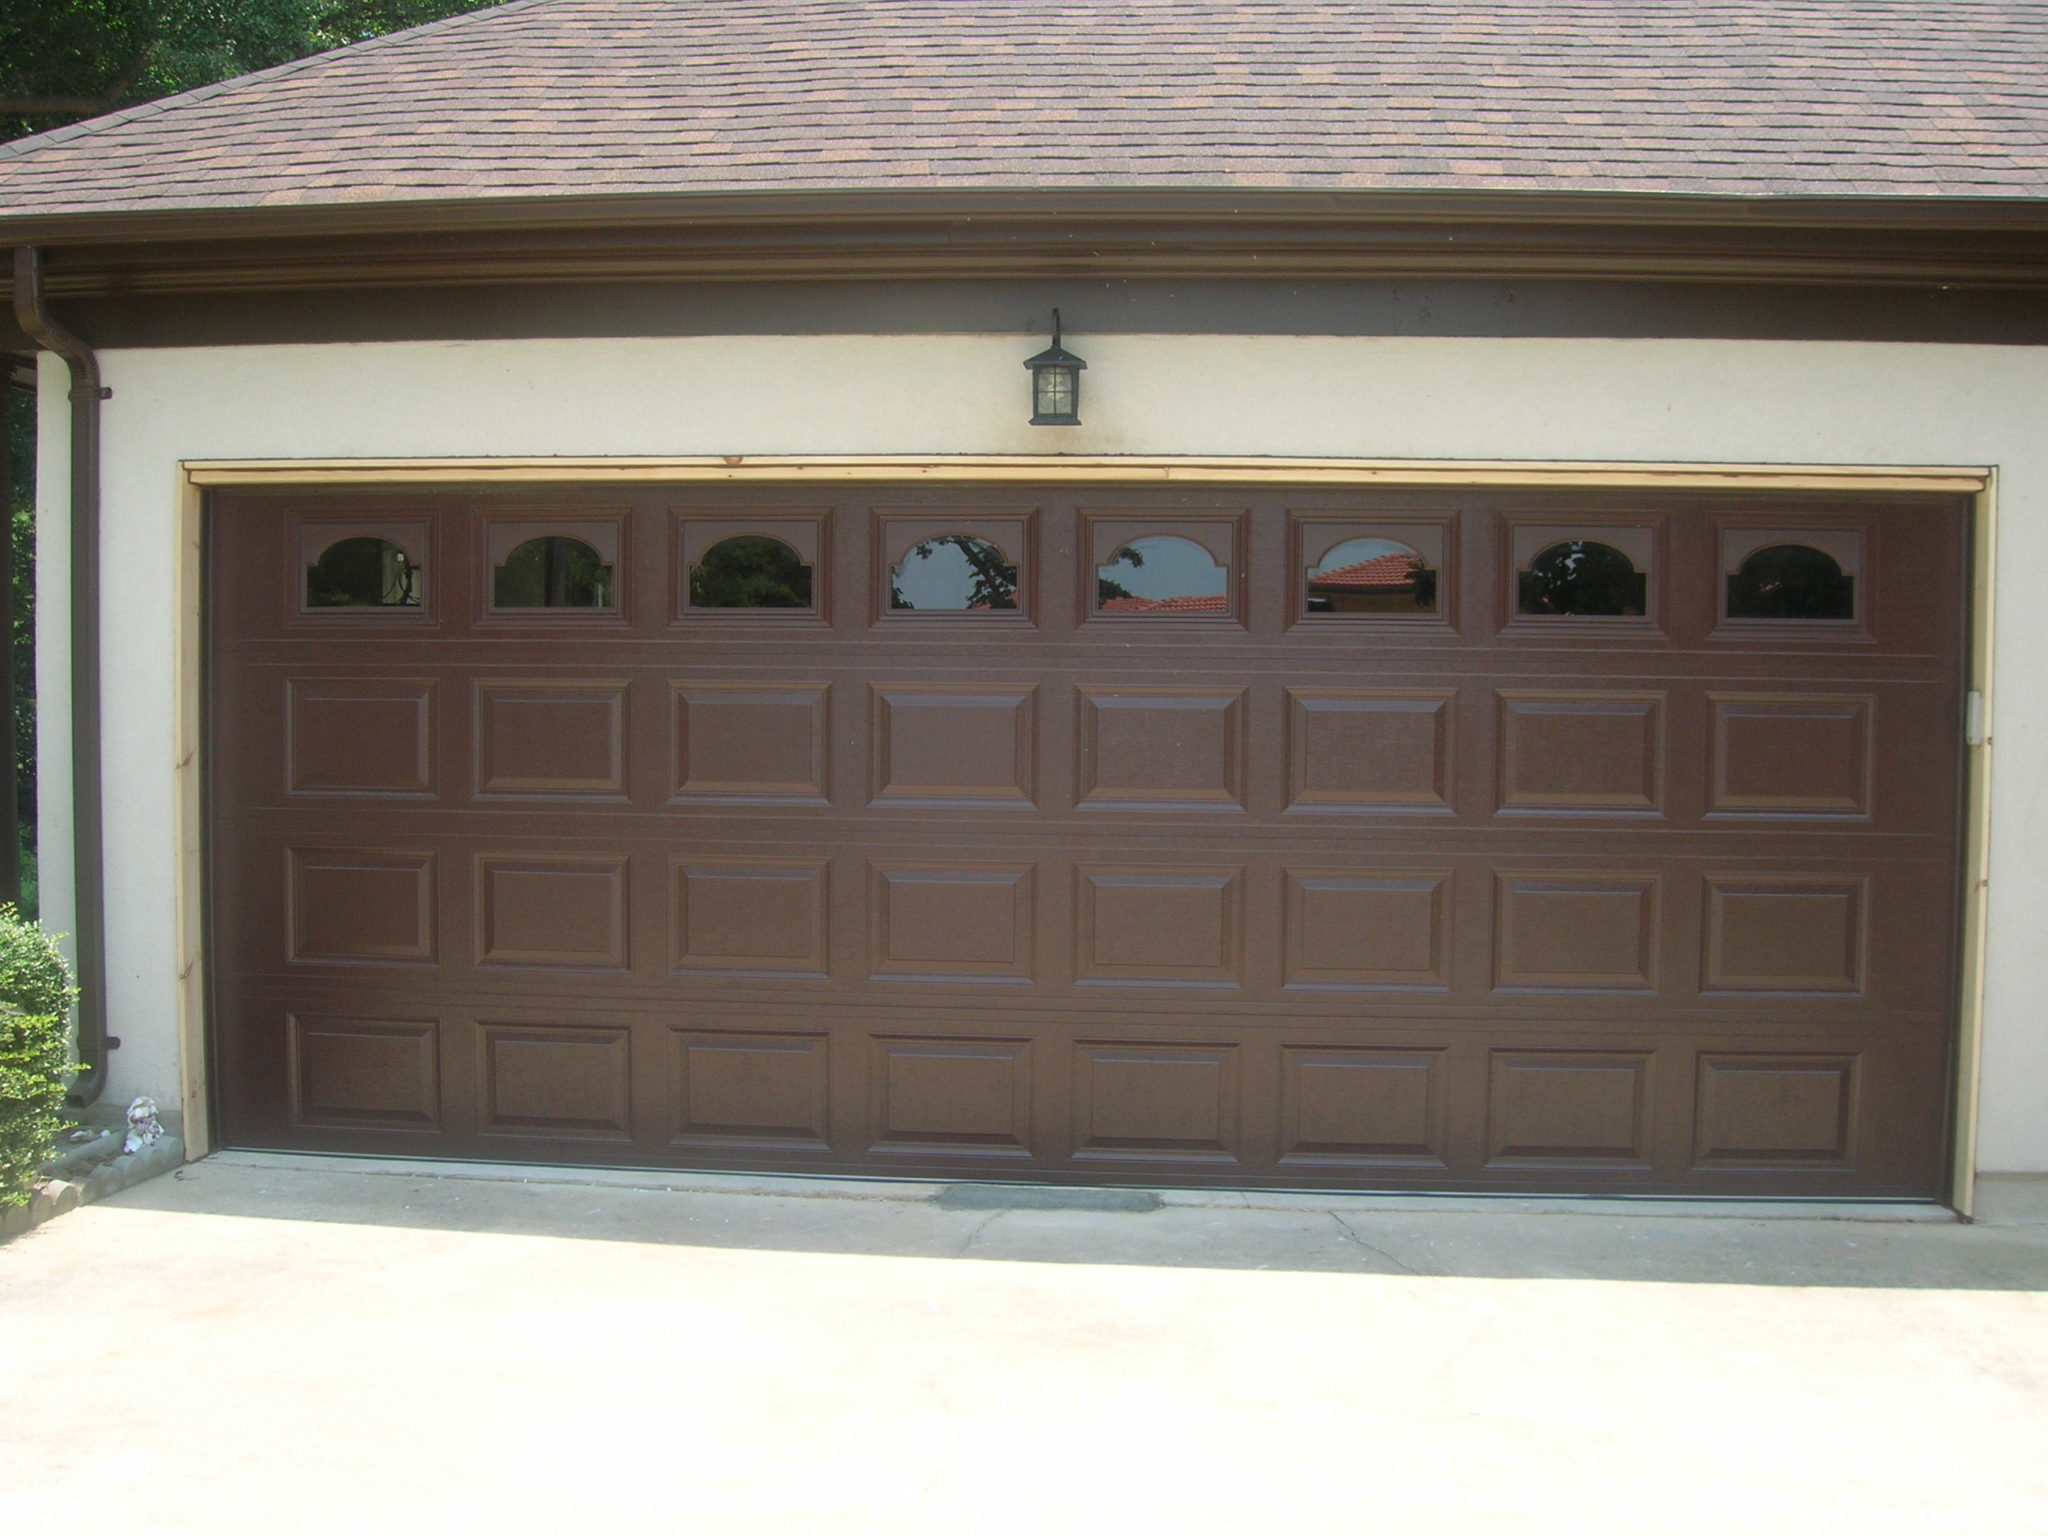 1944 #796C52  Doors Allgarage Doors Direct Residential Garage Door At image Overhead Doors Direct 38432592